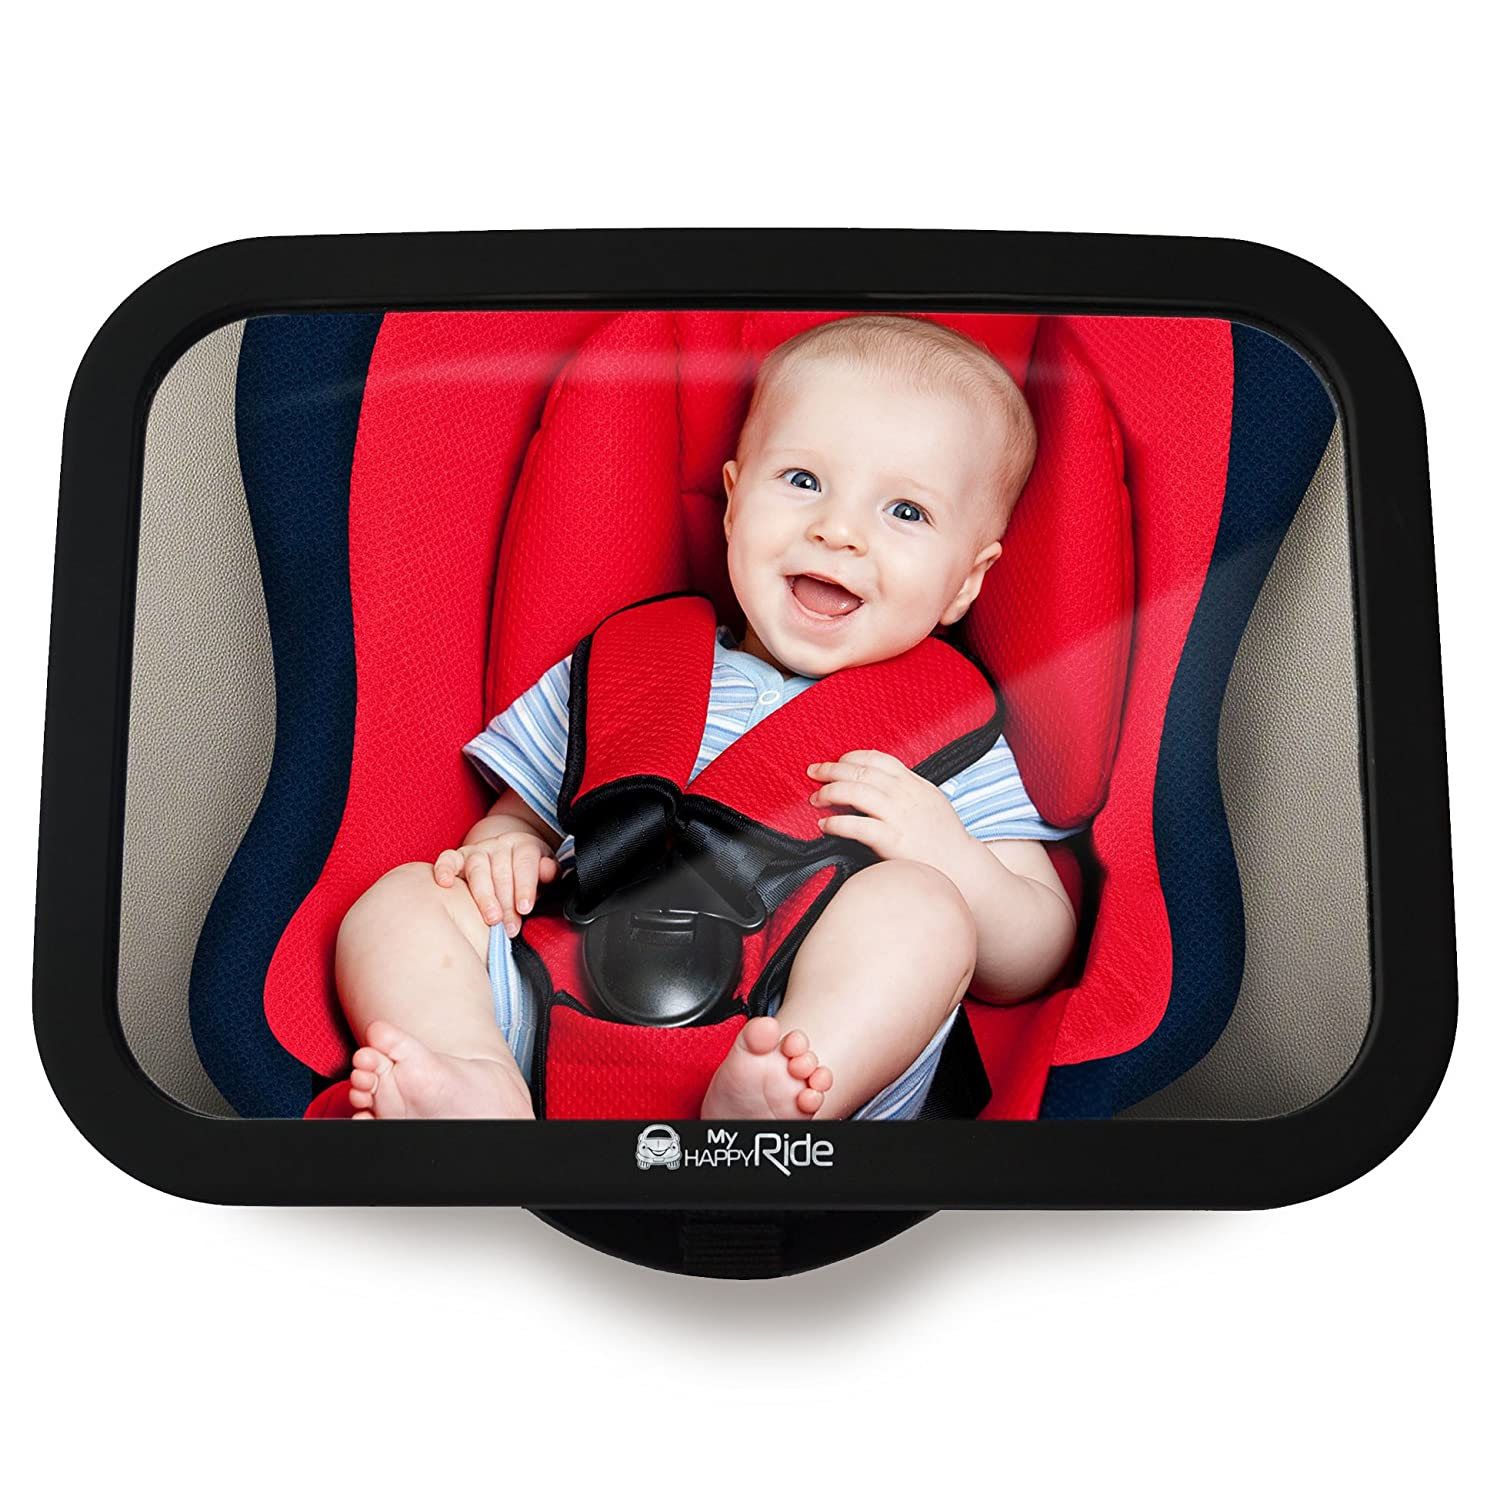 Baby Back Seat Mirror - Shatterproof Car Rearview Mirror to see Child/Infant in Baby Seat, Safety Mirror, Easy Installation, Anti-Wobble Effect, Tight & Universal Fit Heldeon